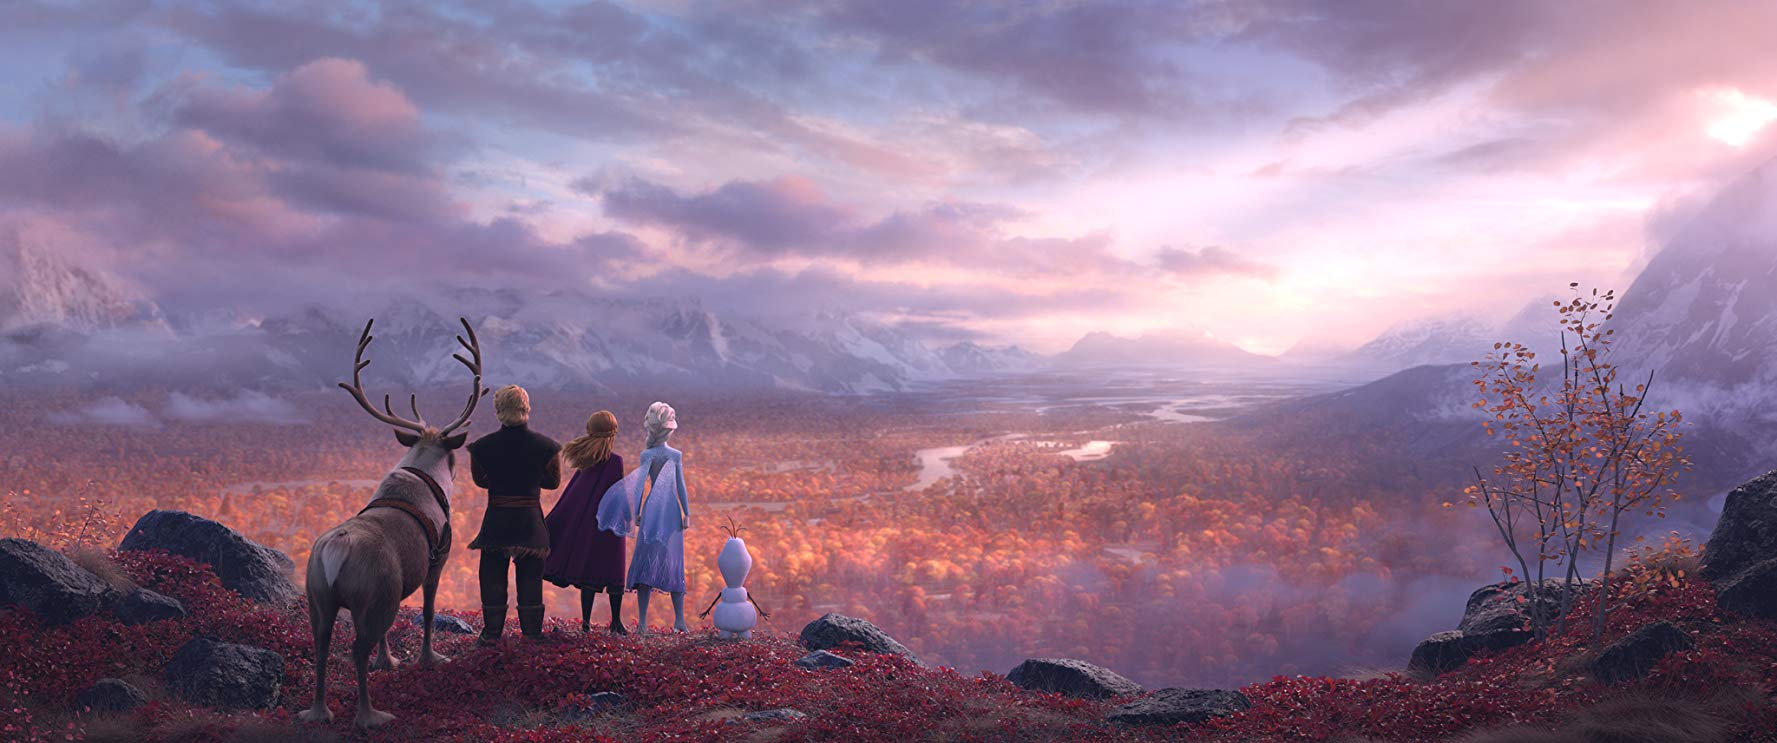 frozen2_still